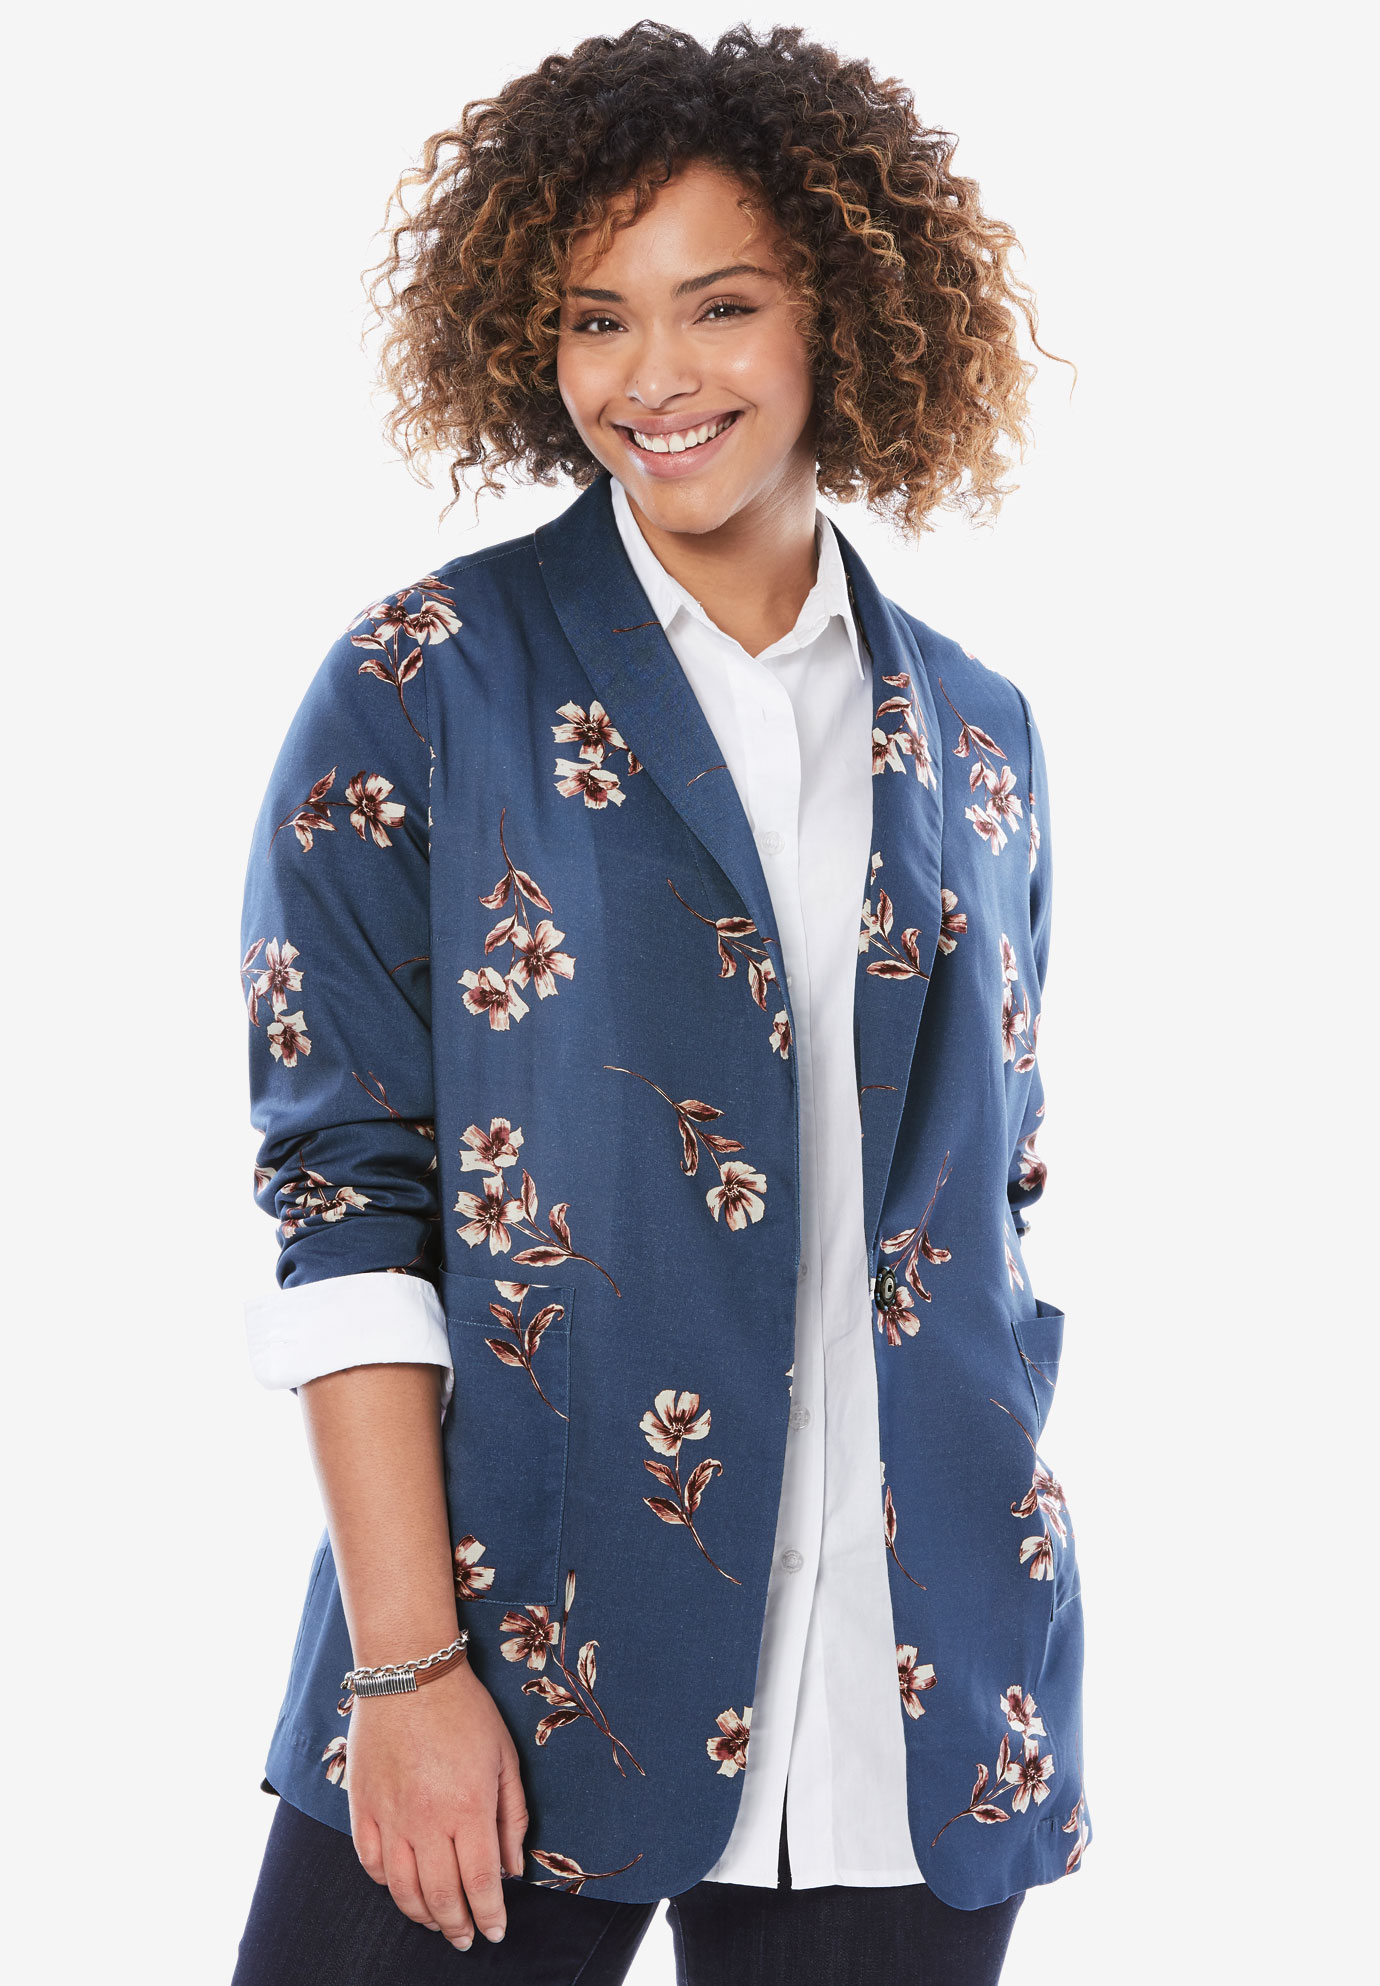 Shawl-Collar Woven Blazer, BERRY ORCHID ILLUSTRATED FLORAL, hi-res